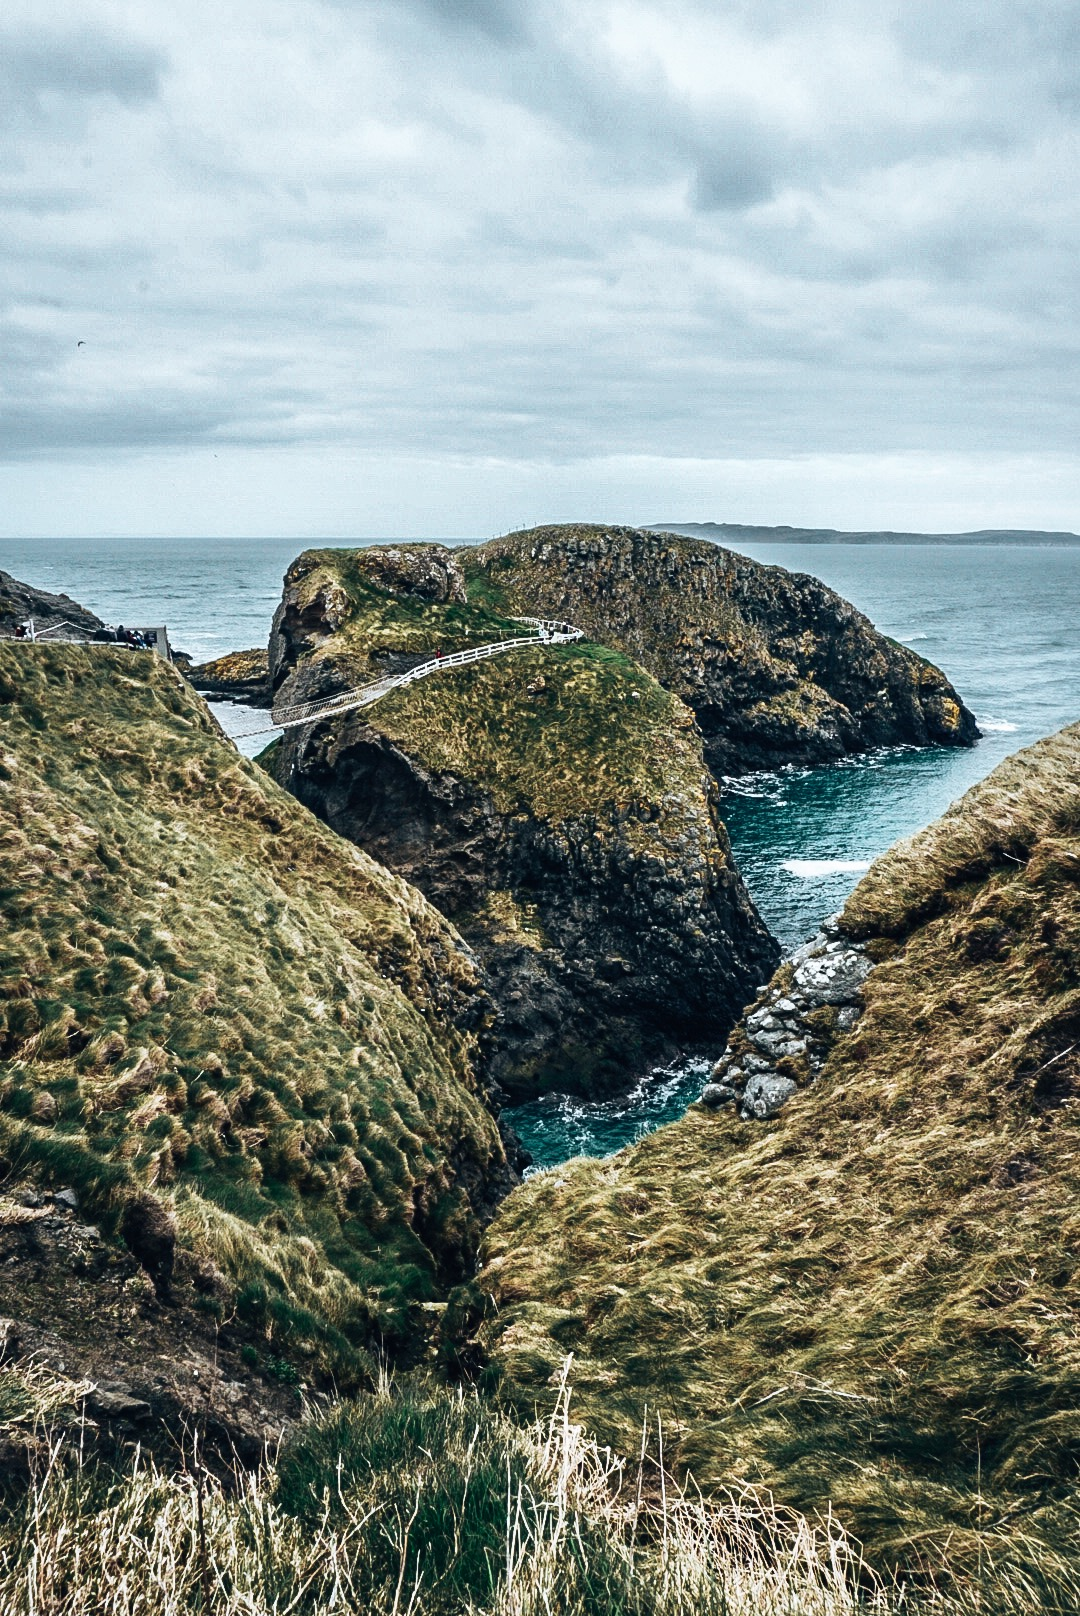 Carrick-a-Rede Bridge from the side